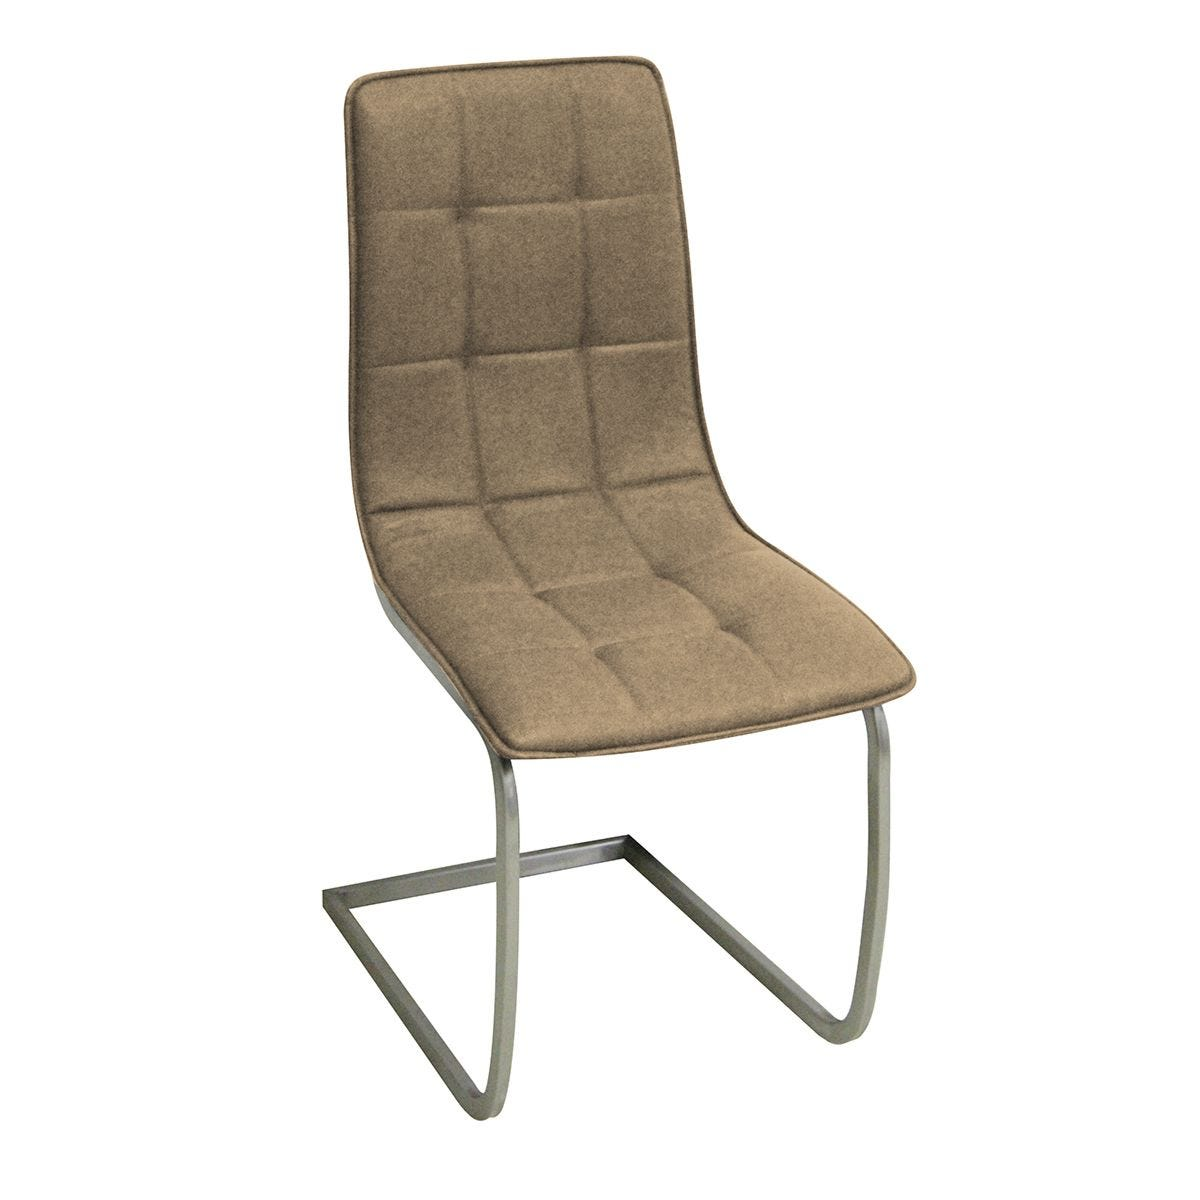 Set Of 2 Olivia Faux Leather Chairs - Chrome/Brown